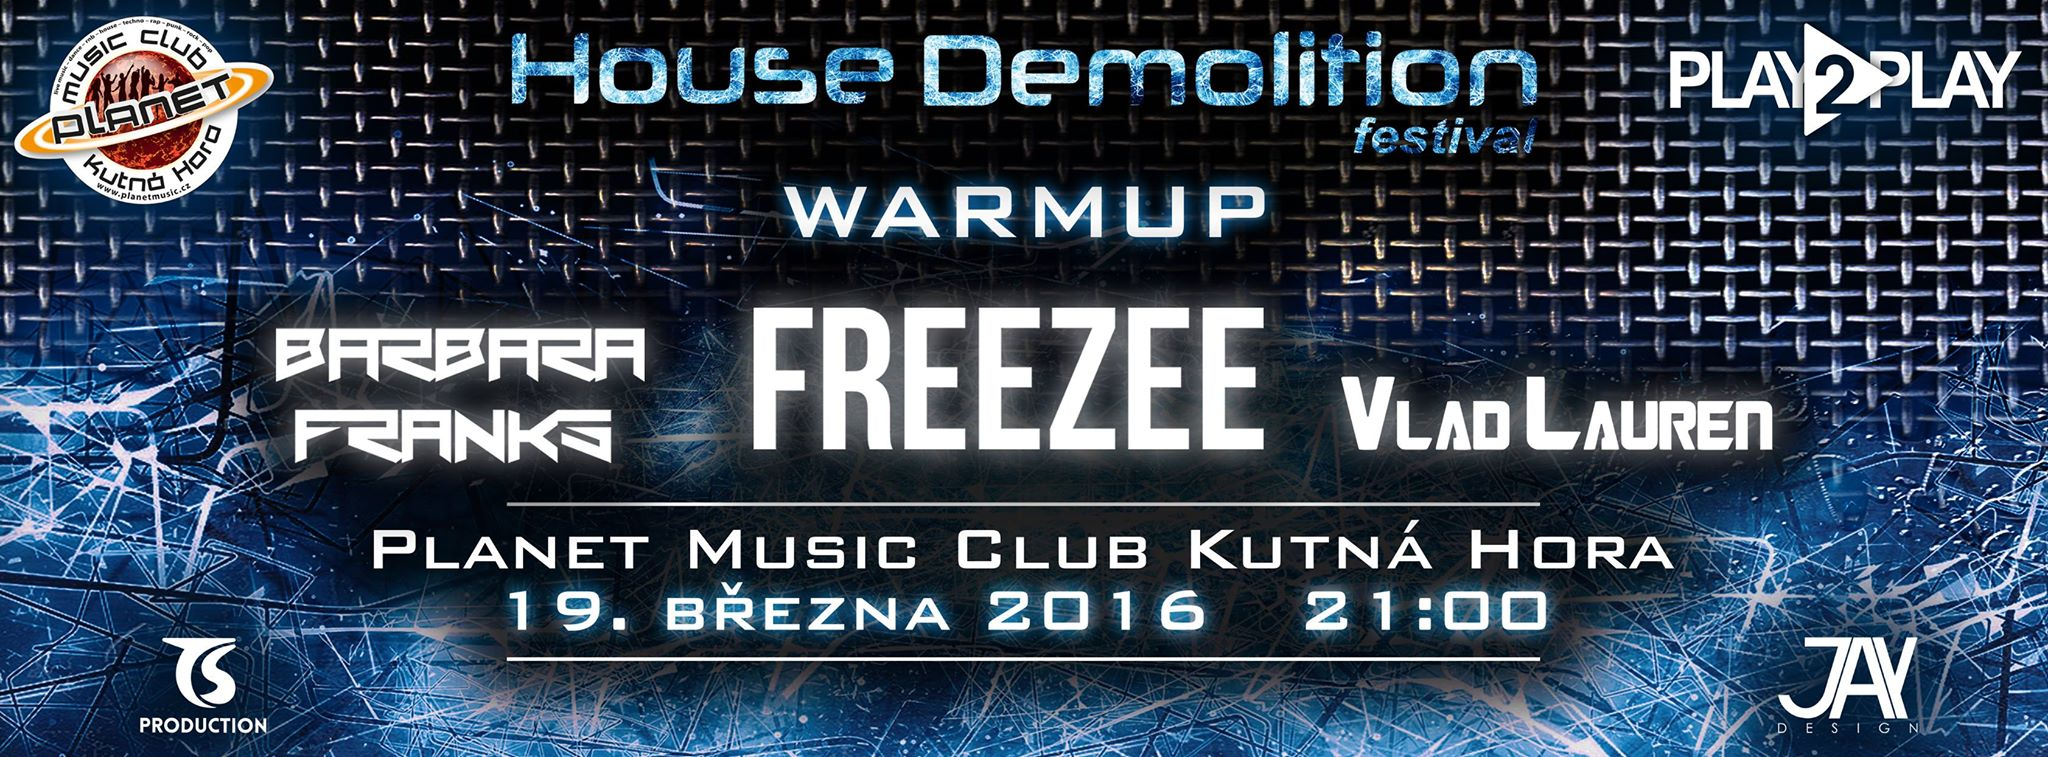 House Demolition Festival WarmUP - 19.3.2016 - Planet Music Kutná Hora